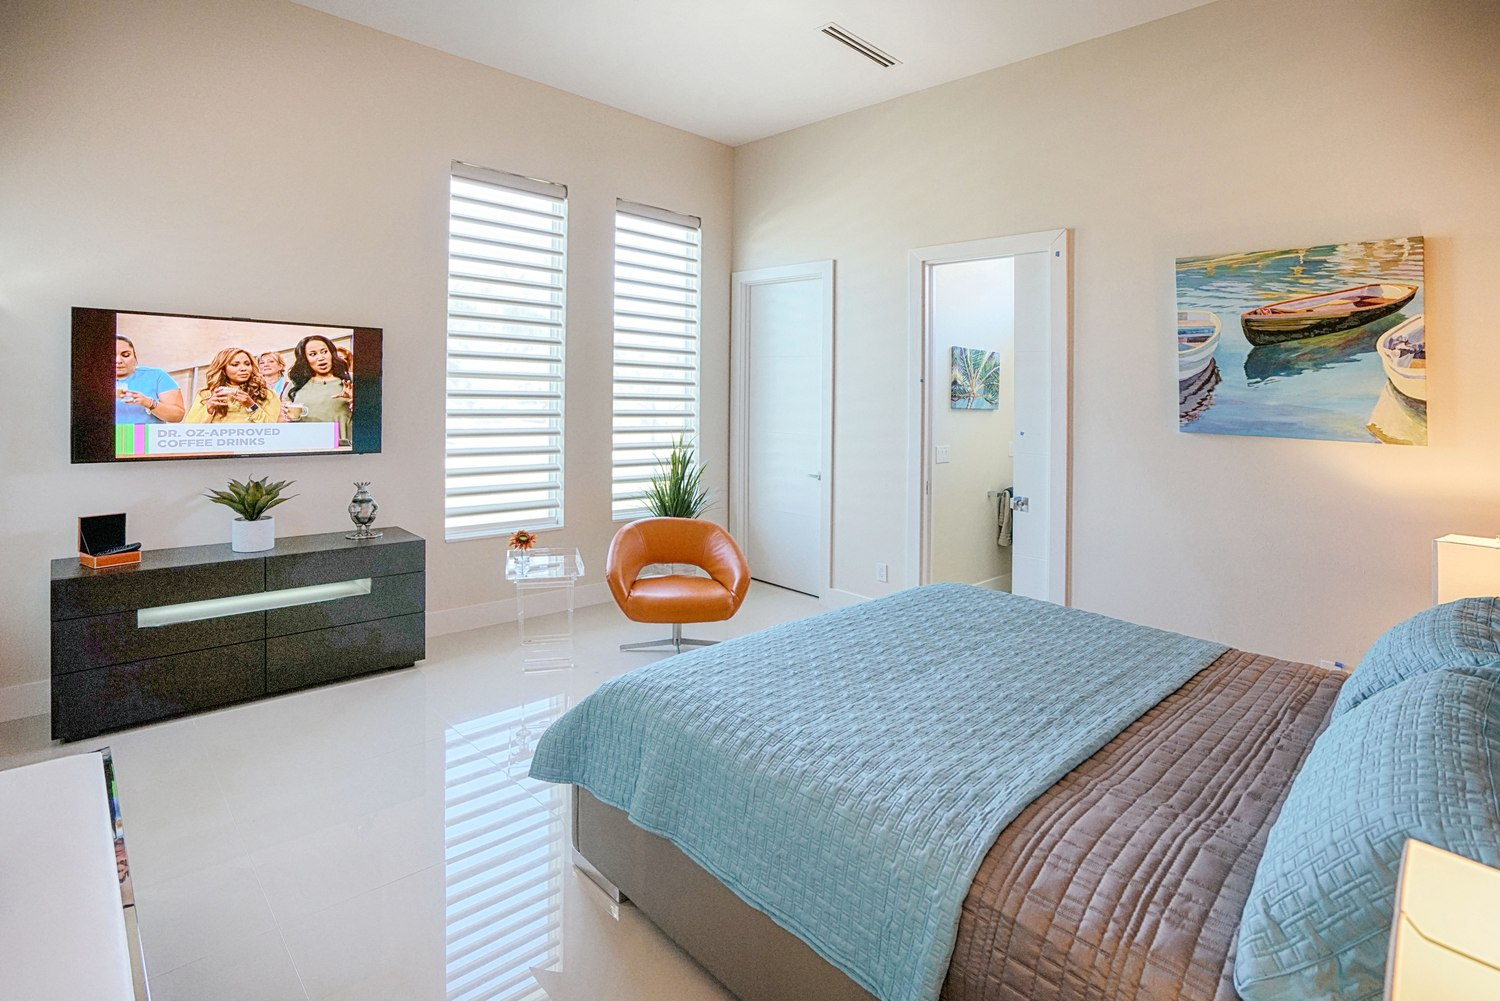 Bedroom in Florida